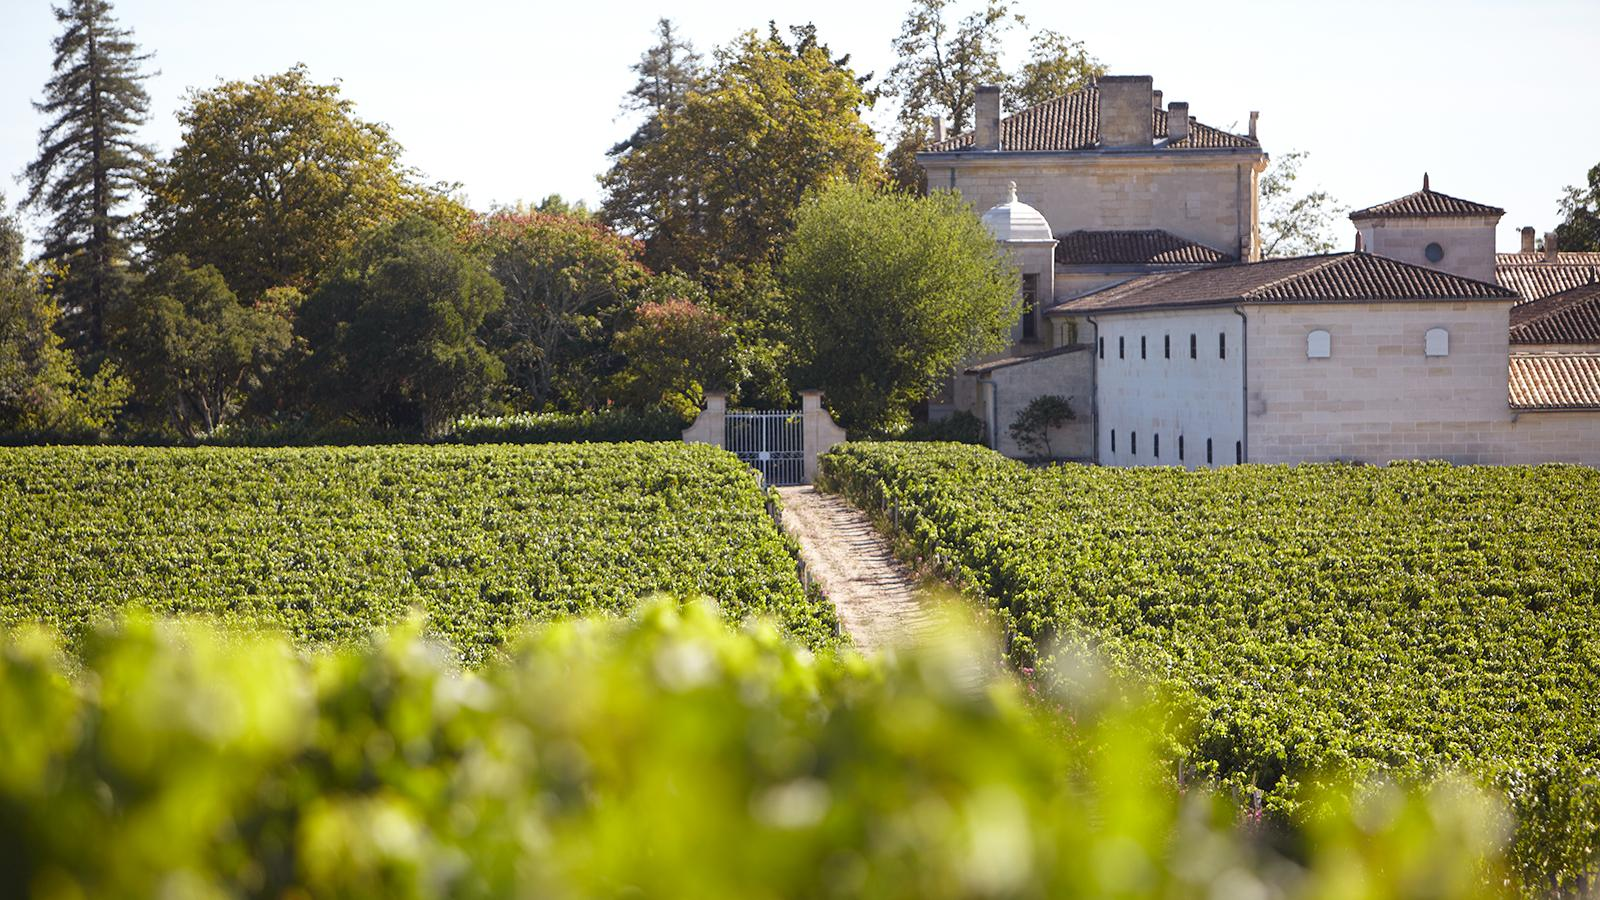 2016 Bordeaux Wine Futures Prices and Analysis: Latest Updates